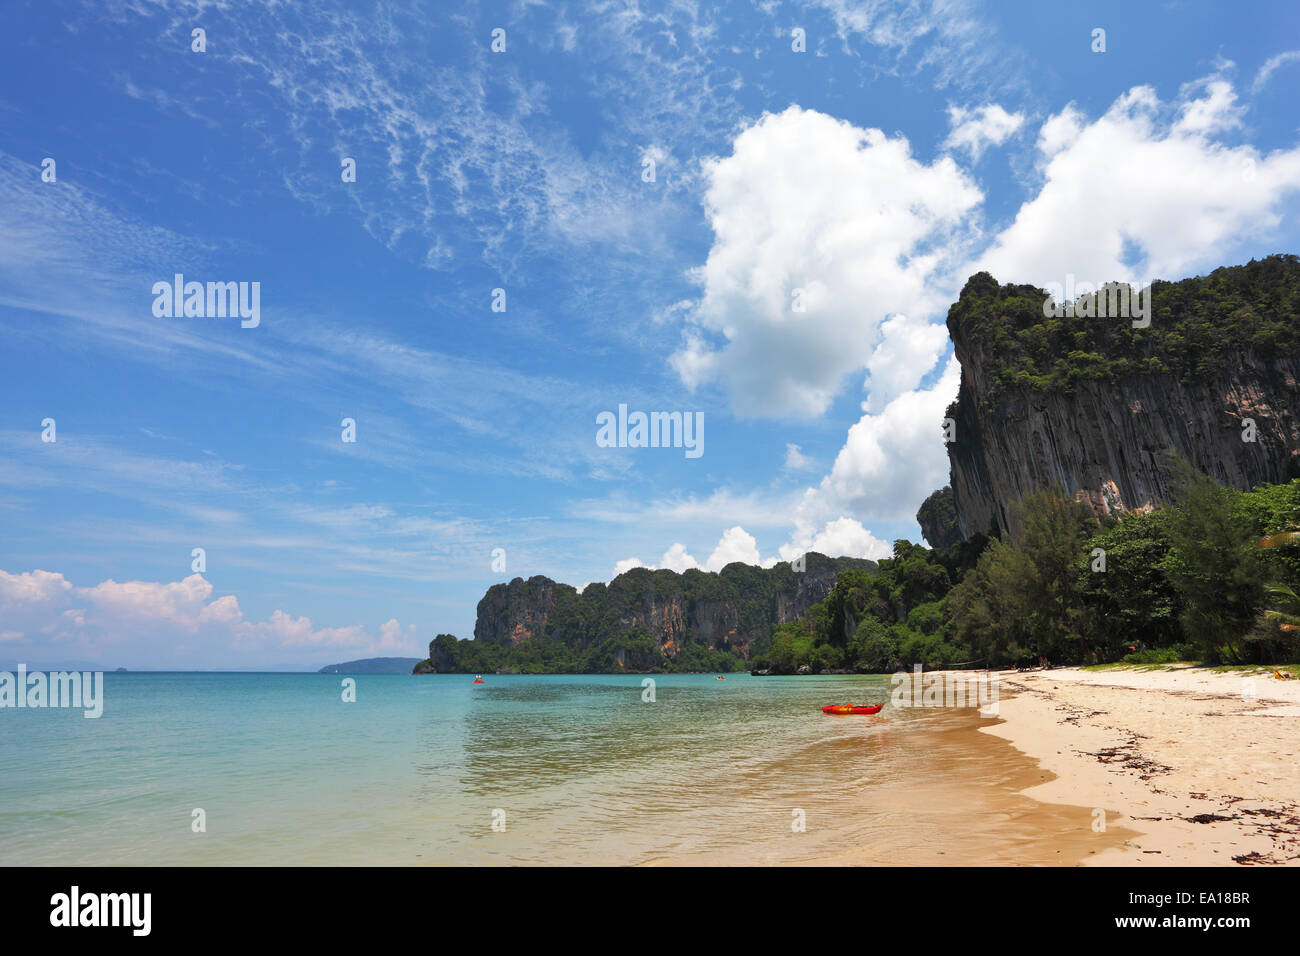 The gentle surf. Thailand, Krabi - Stock Image